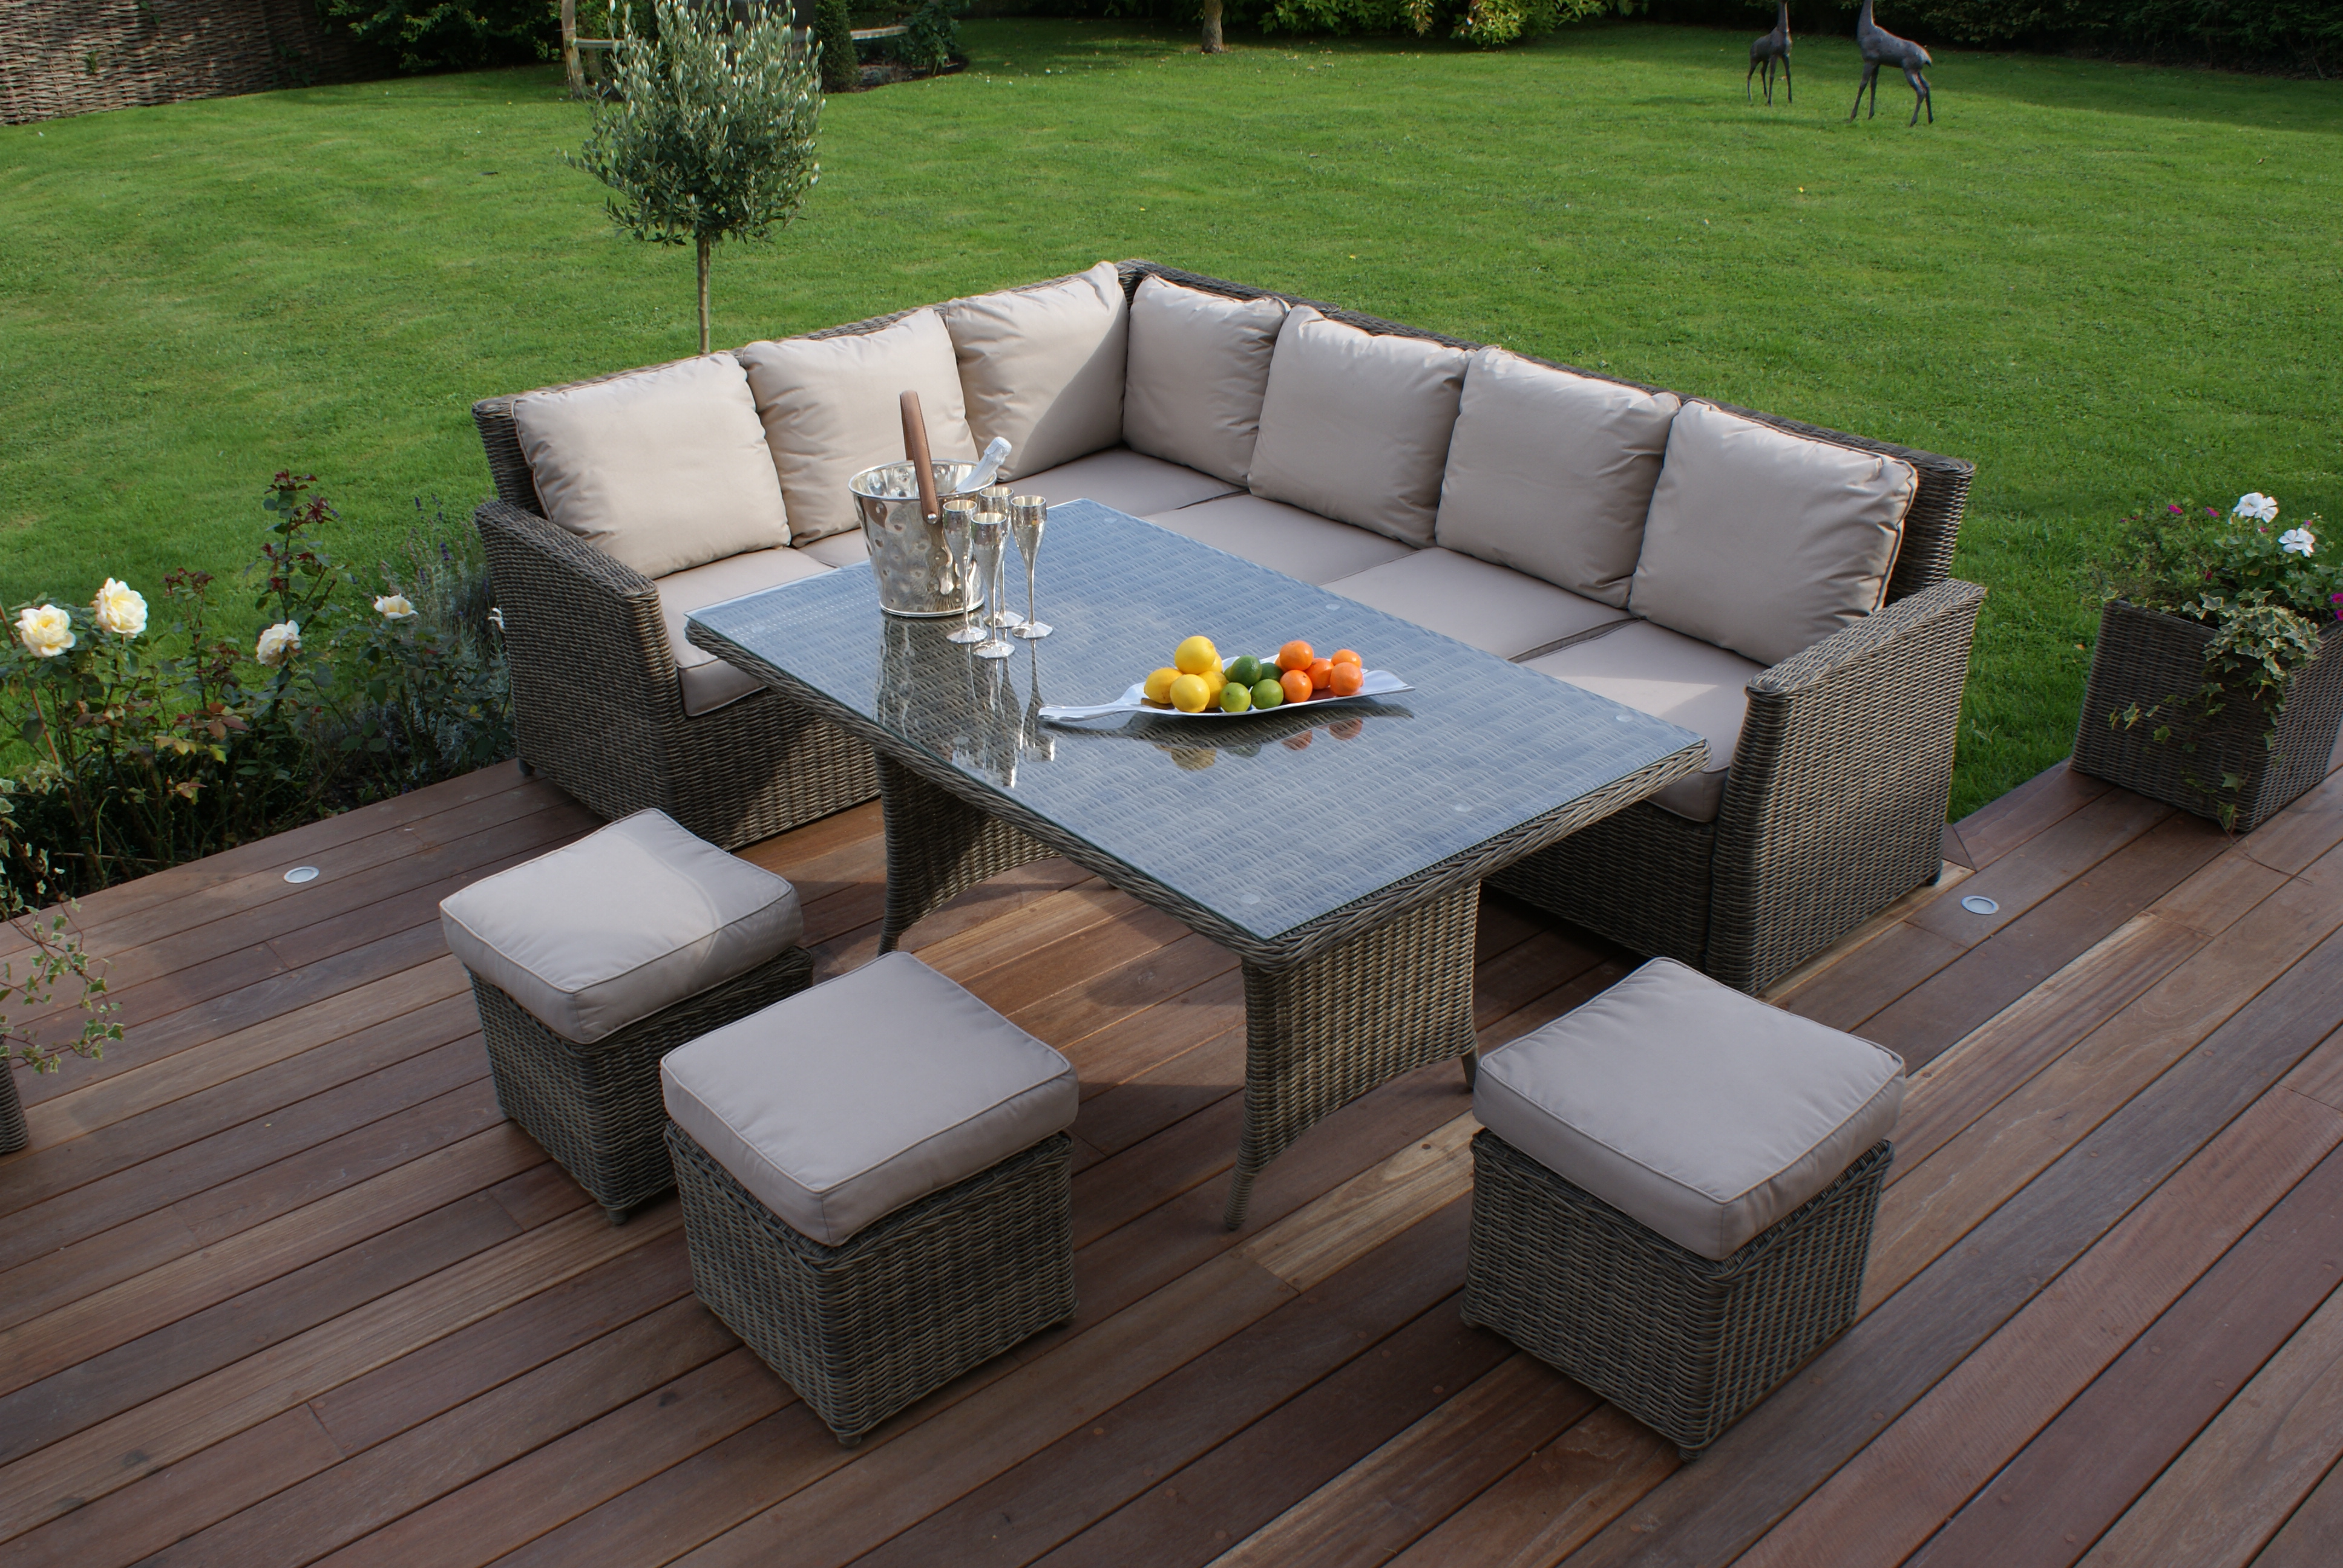 Sofa dining set outdoor hereo sofa for Garden patio furniture sets